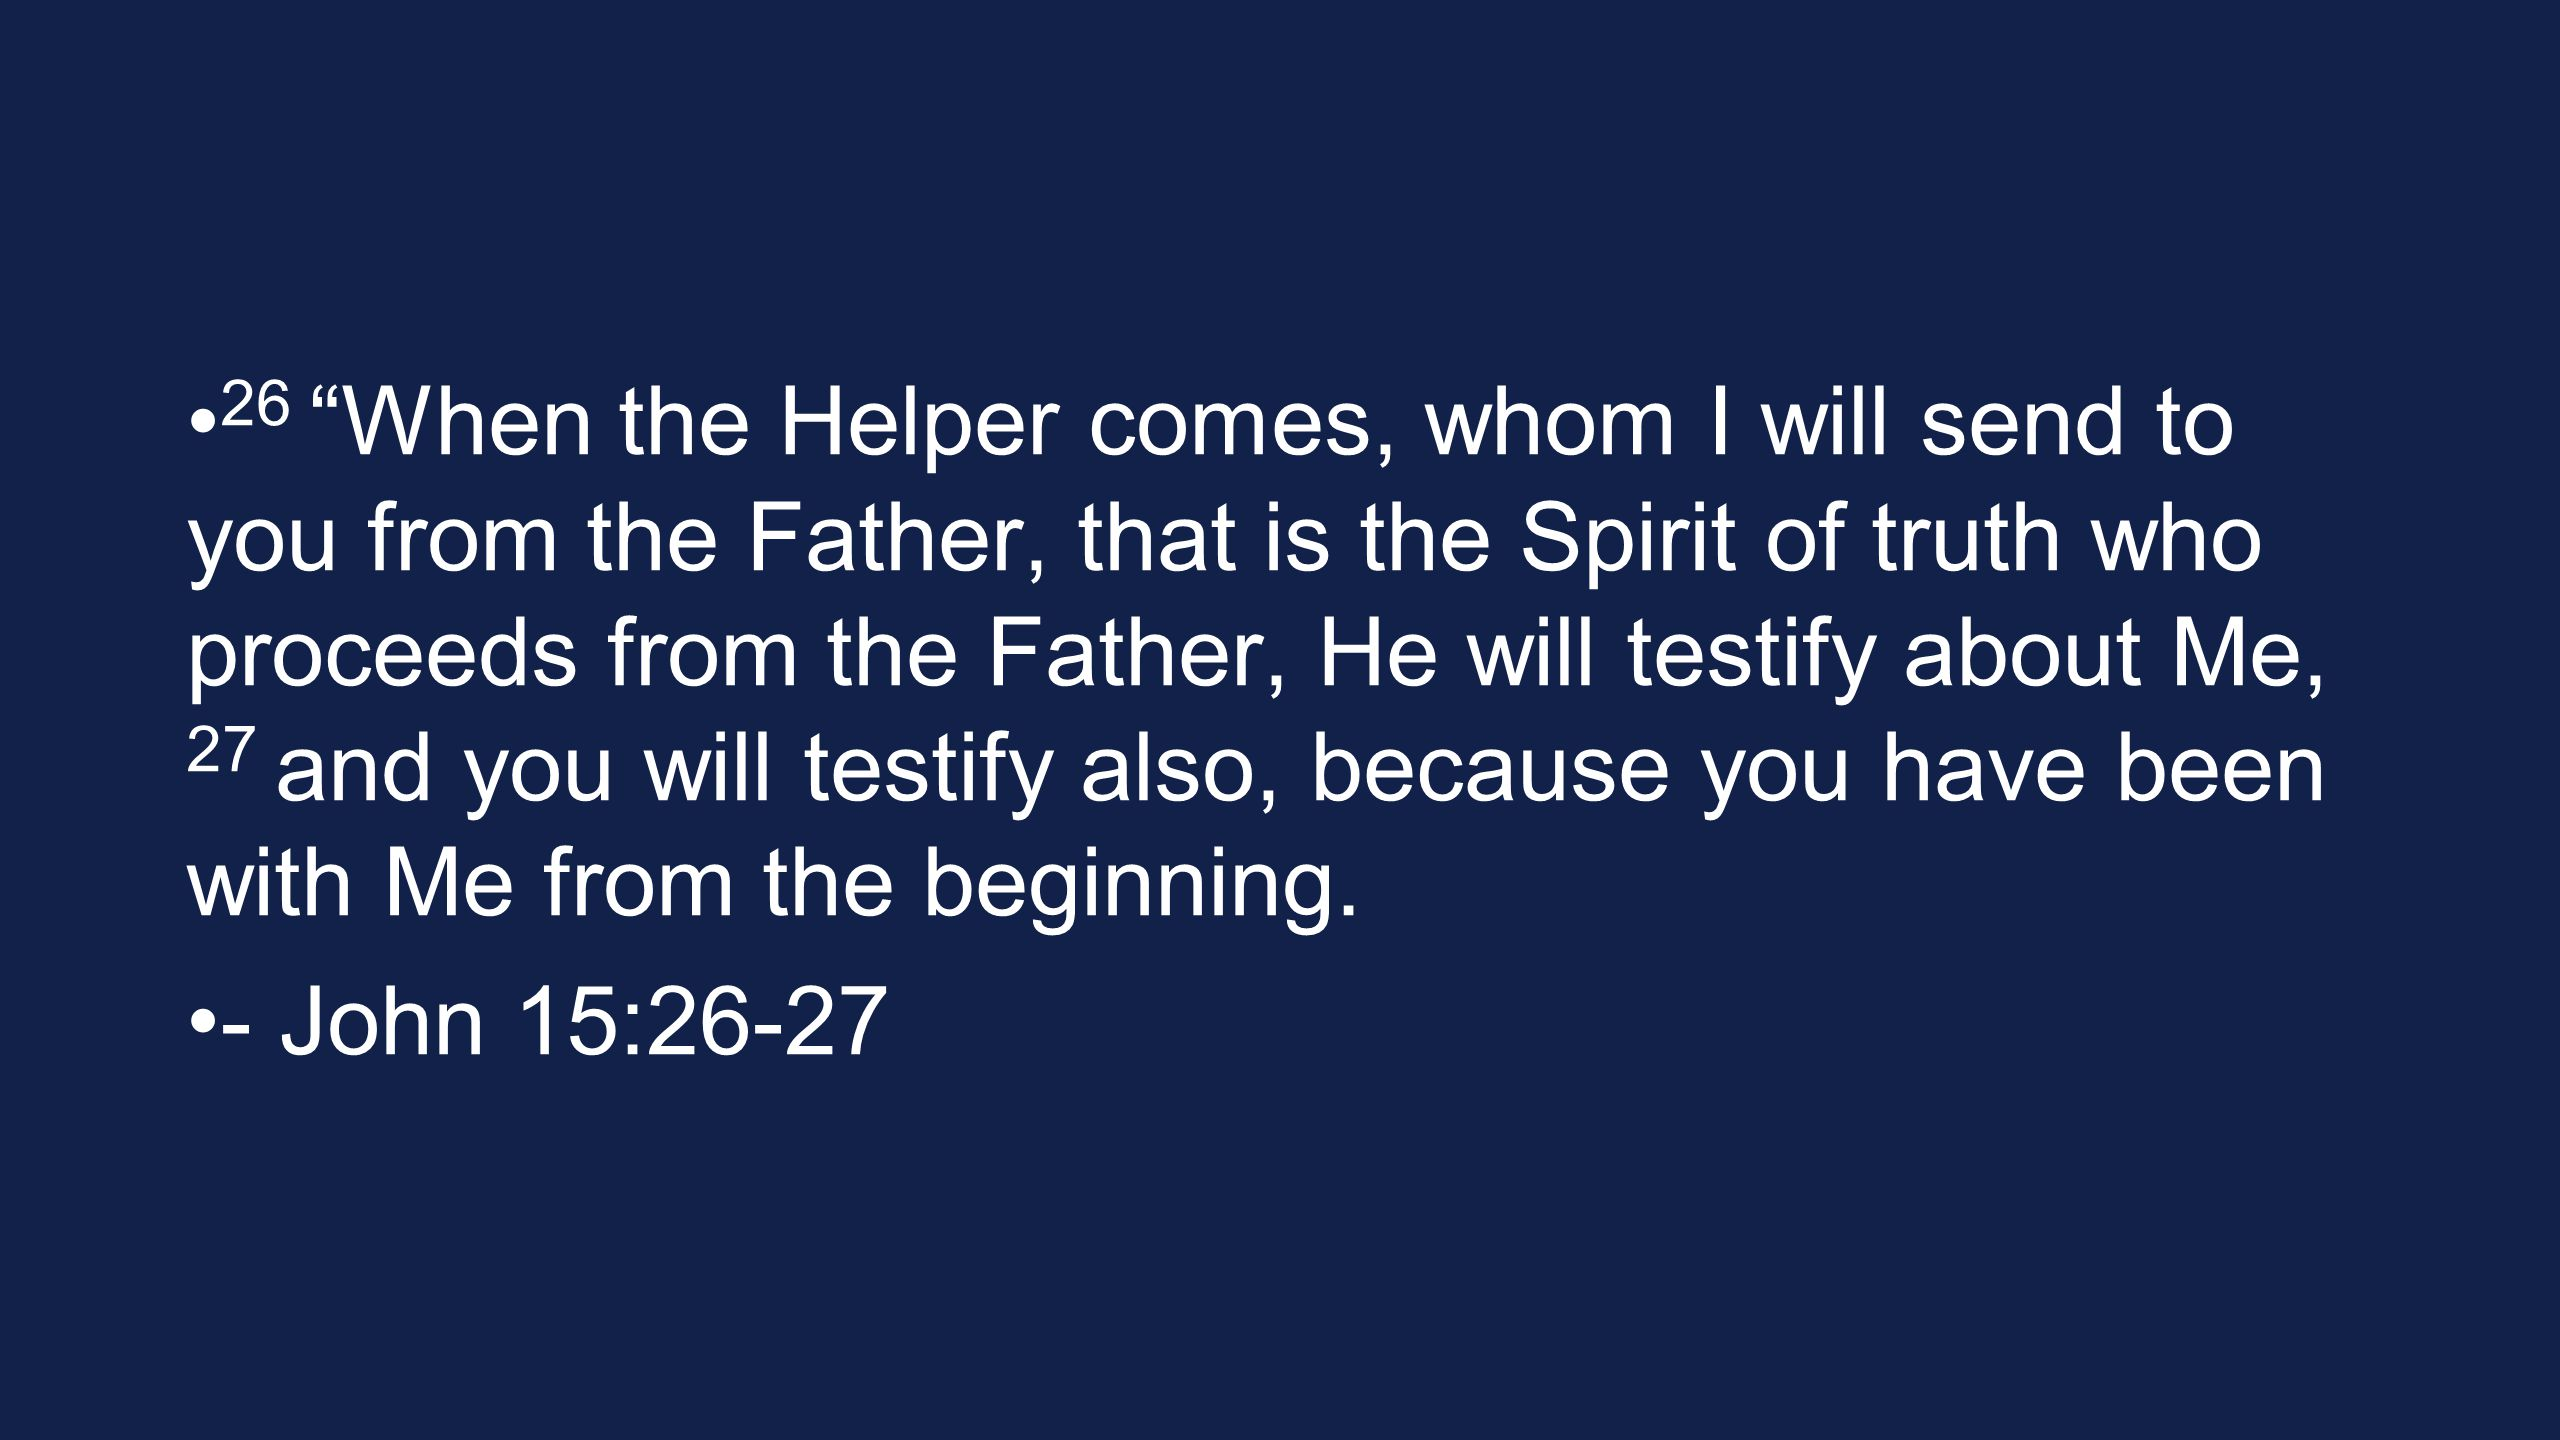 26 When the Helper comes, whom I will send to you from the Father, that is the Spirit of truth who proceeds from the Father, He will testify about Me, 27 and you will testify also, because you have been with Me from the beginning.